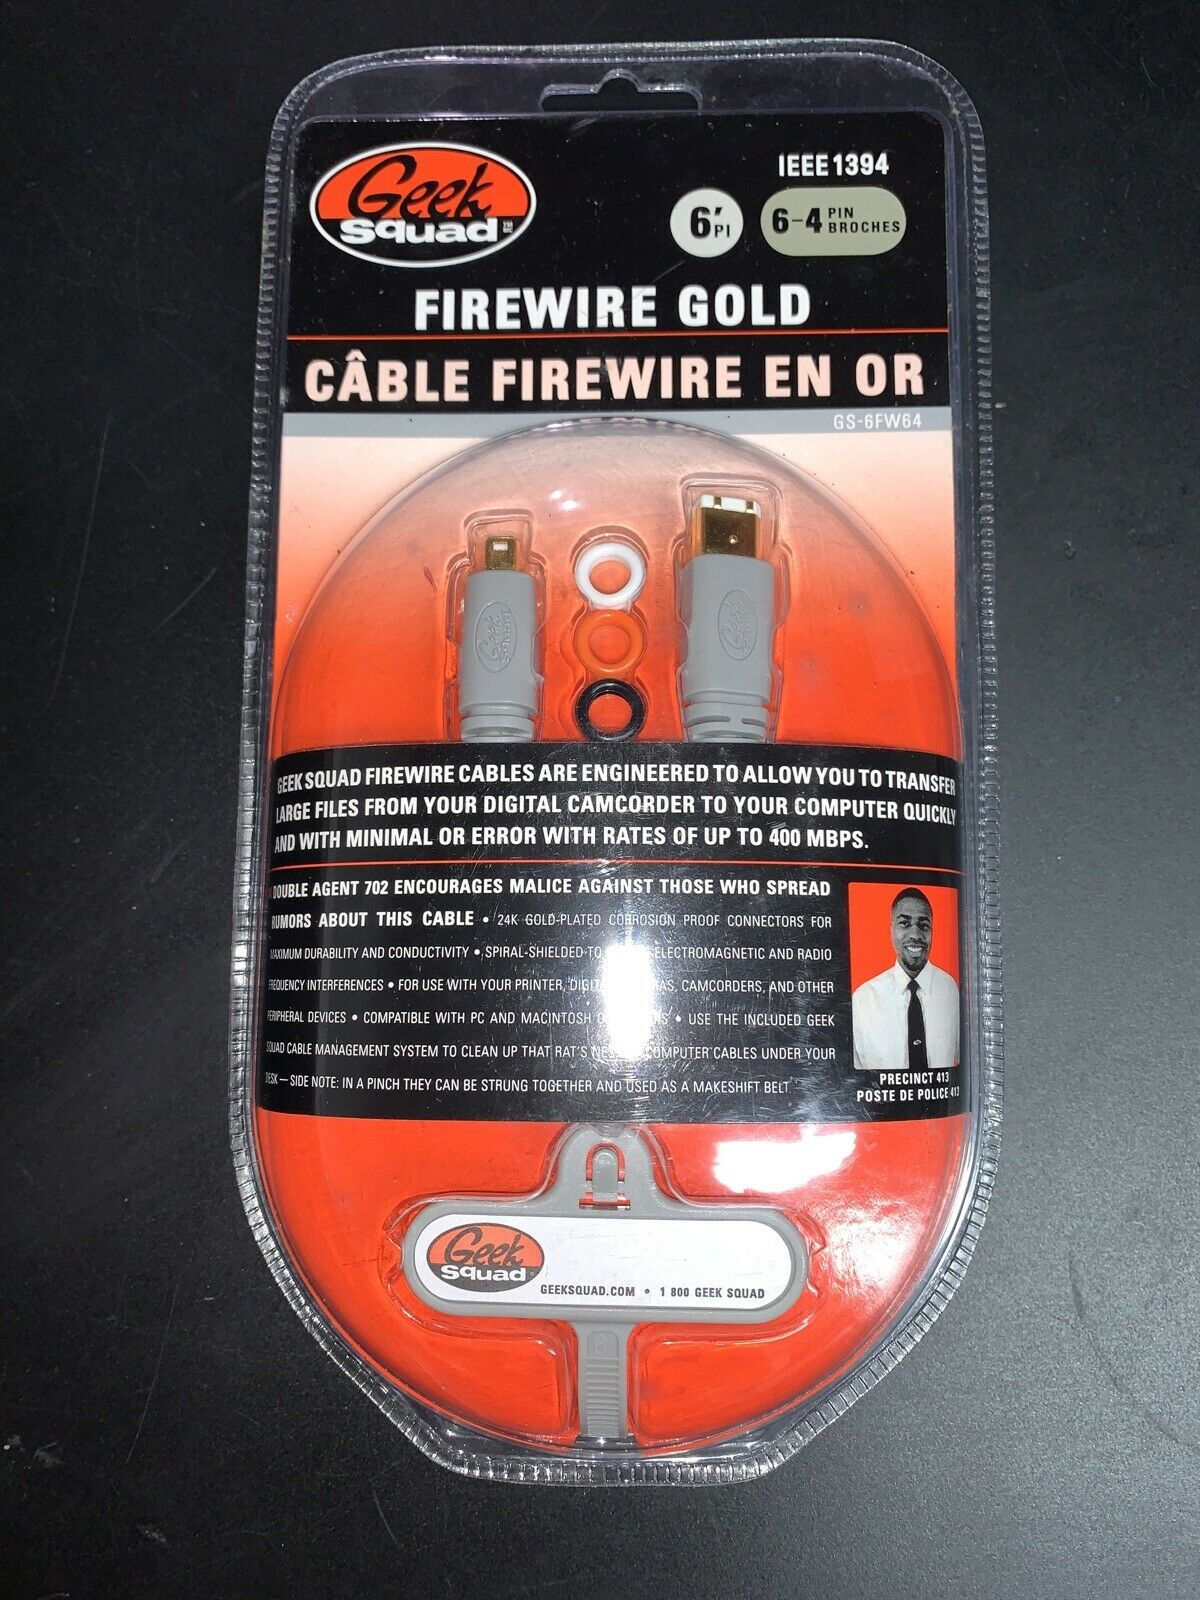 GEEK SQUAD Firewire Cable Gold 6' 6-pin to 4-pin GS-14FW64 IEEE 1394